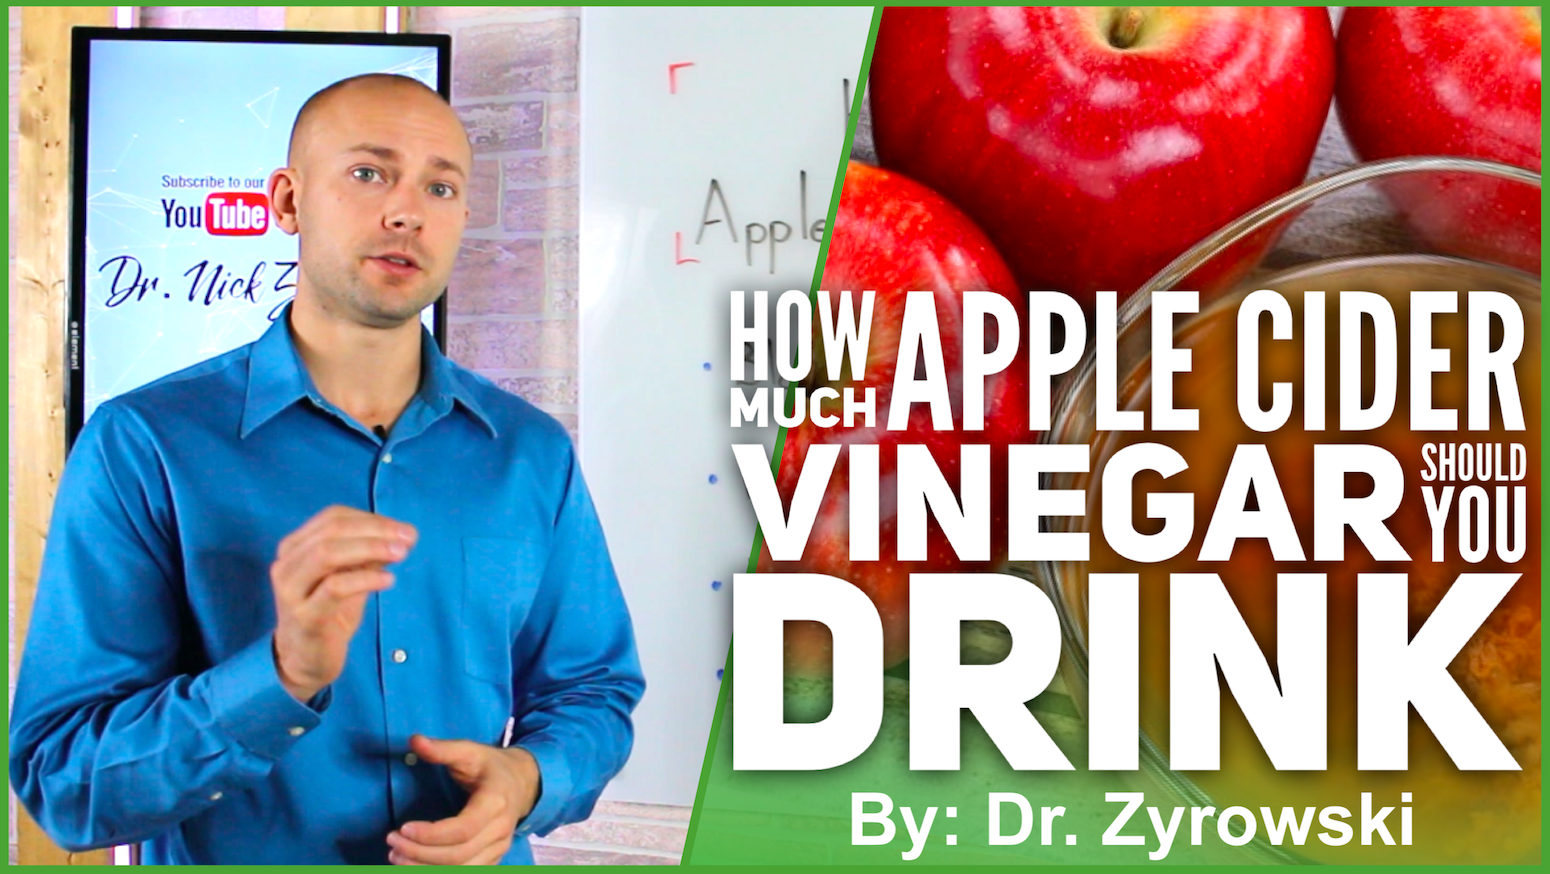 How Much Apple Cider Vinegar Should You Drink